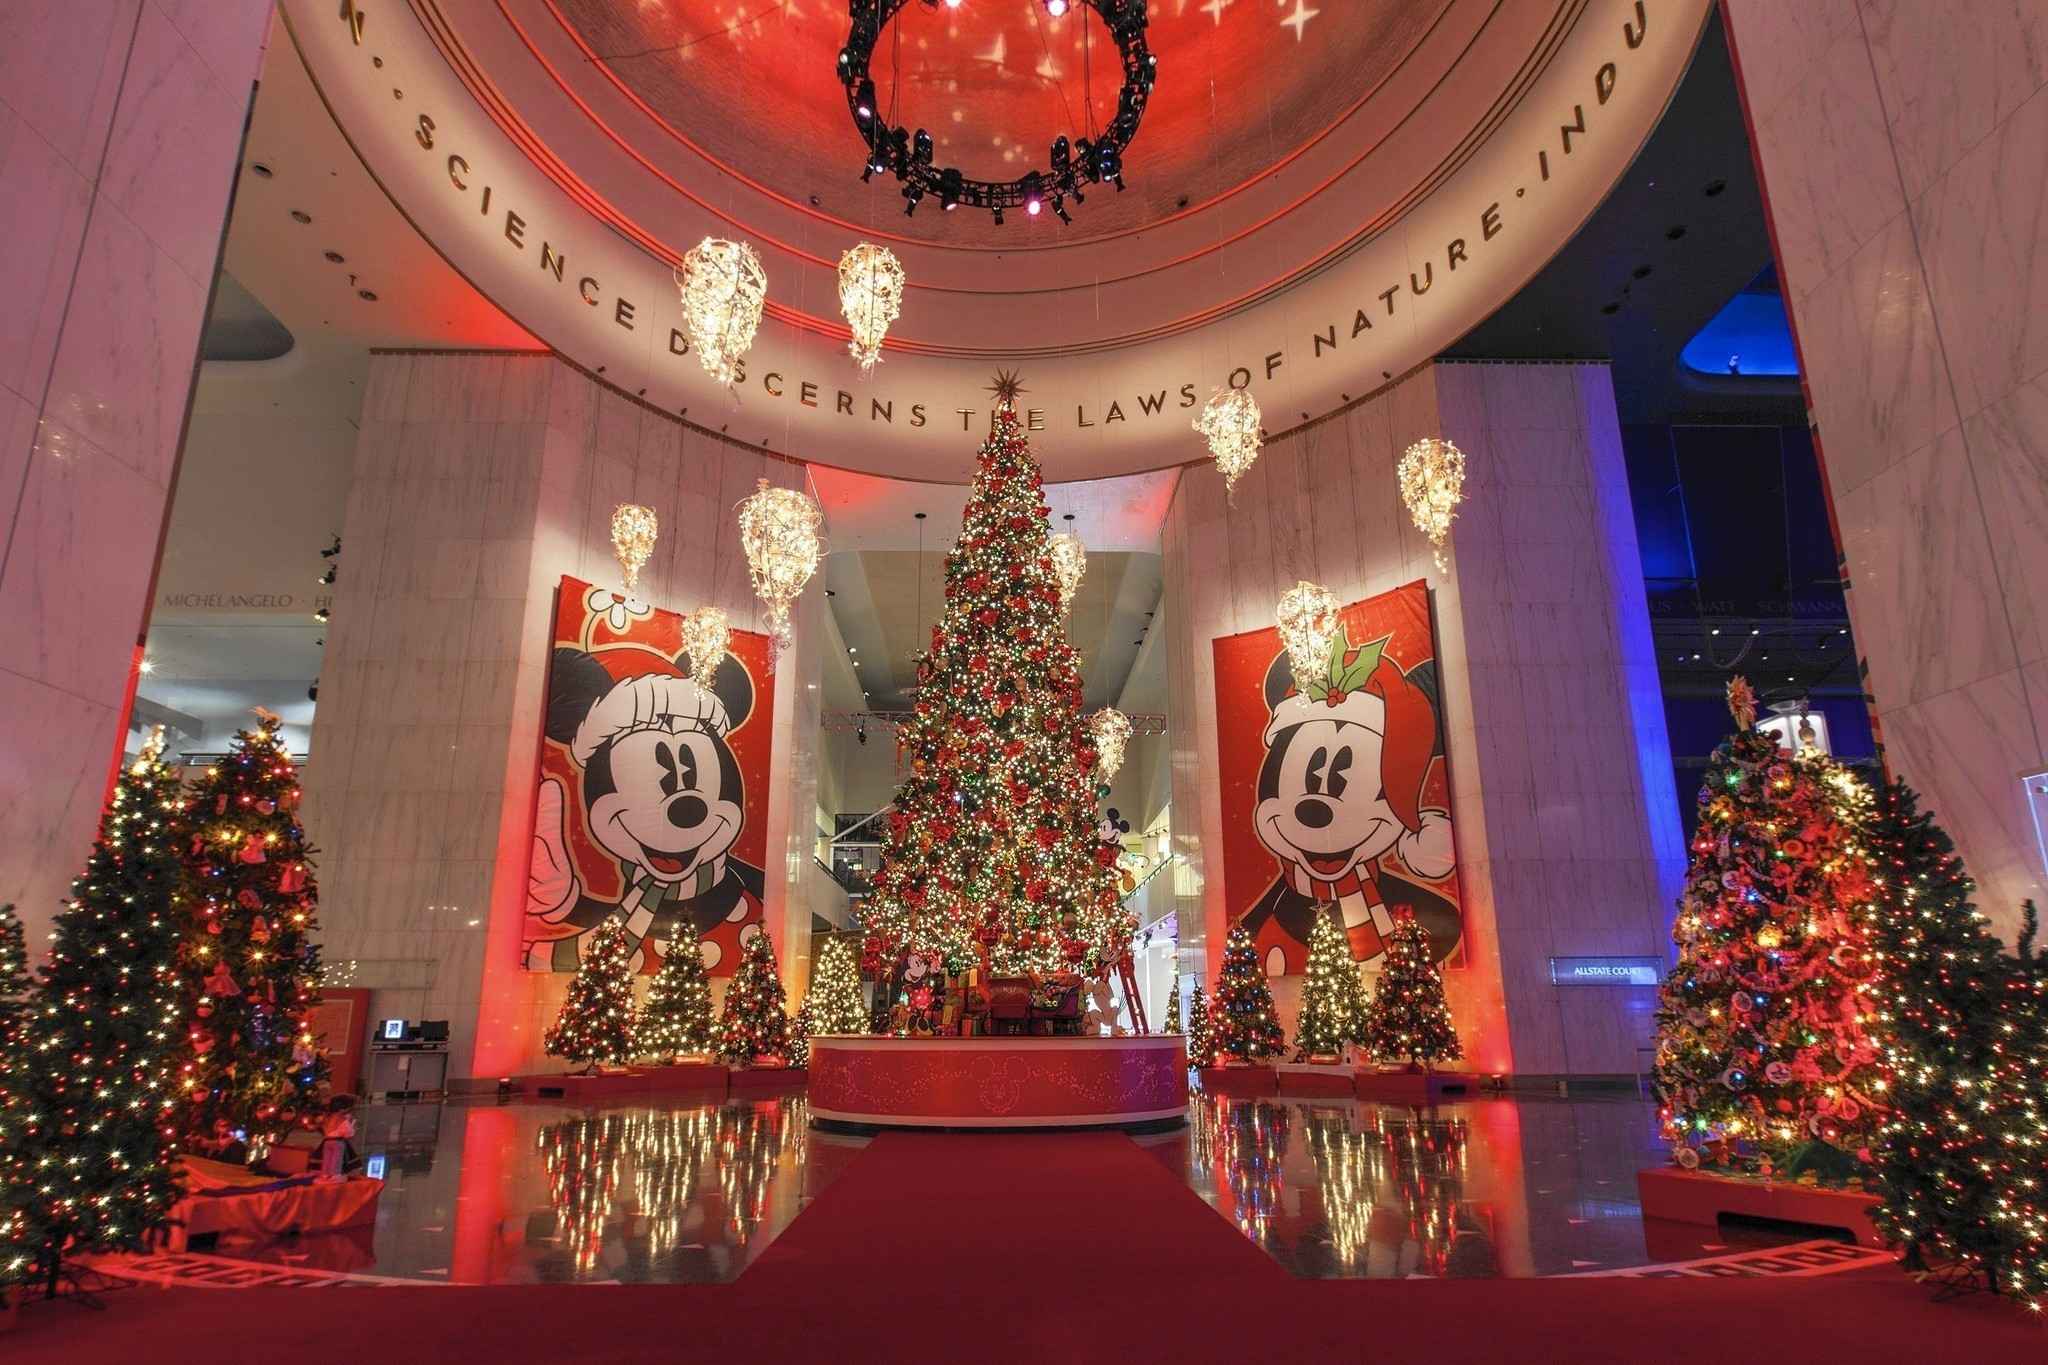 museum of science and industry opens holiday exhibit nov 13 chicago tribune - Christmas Around The World Chicago